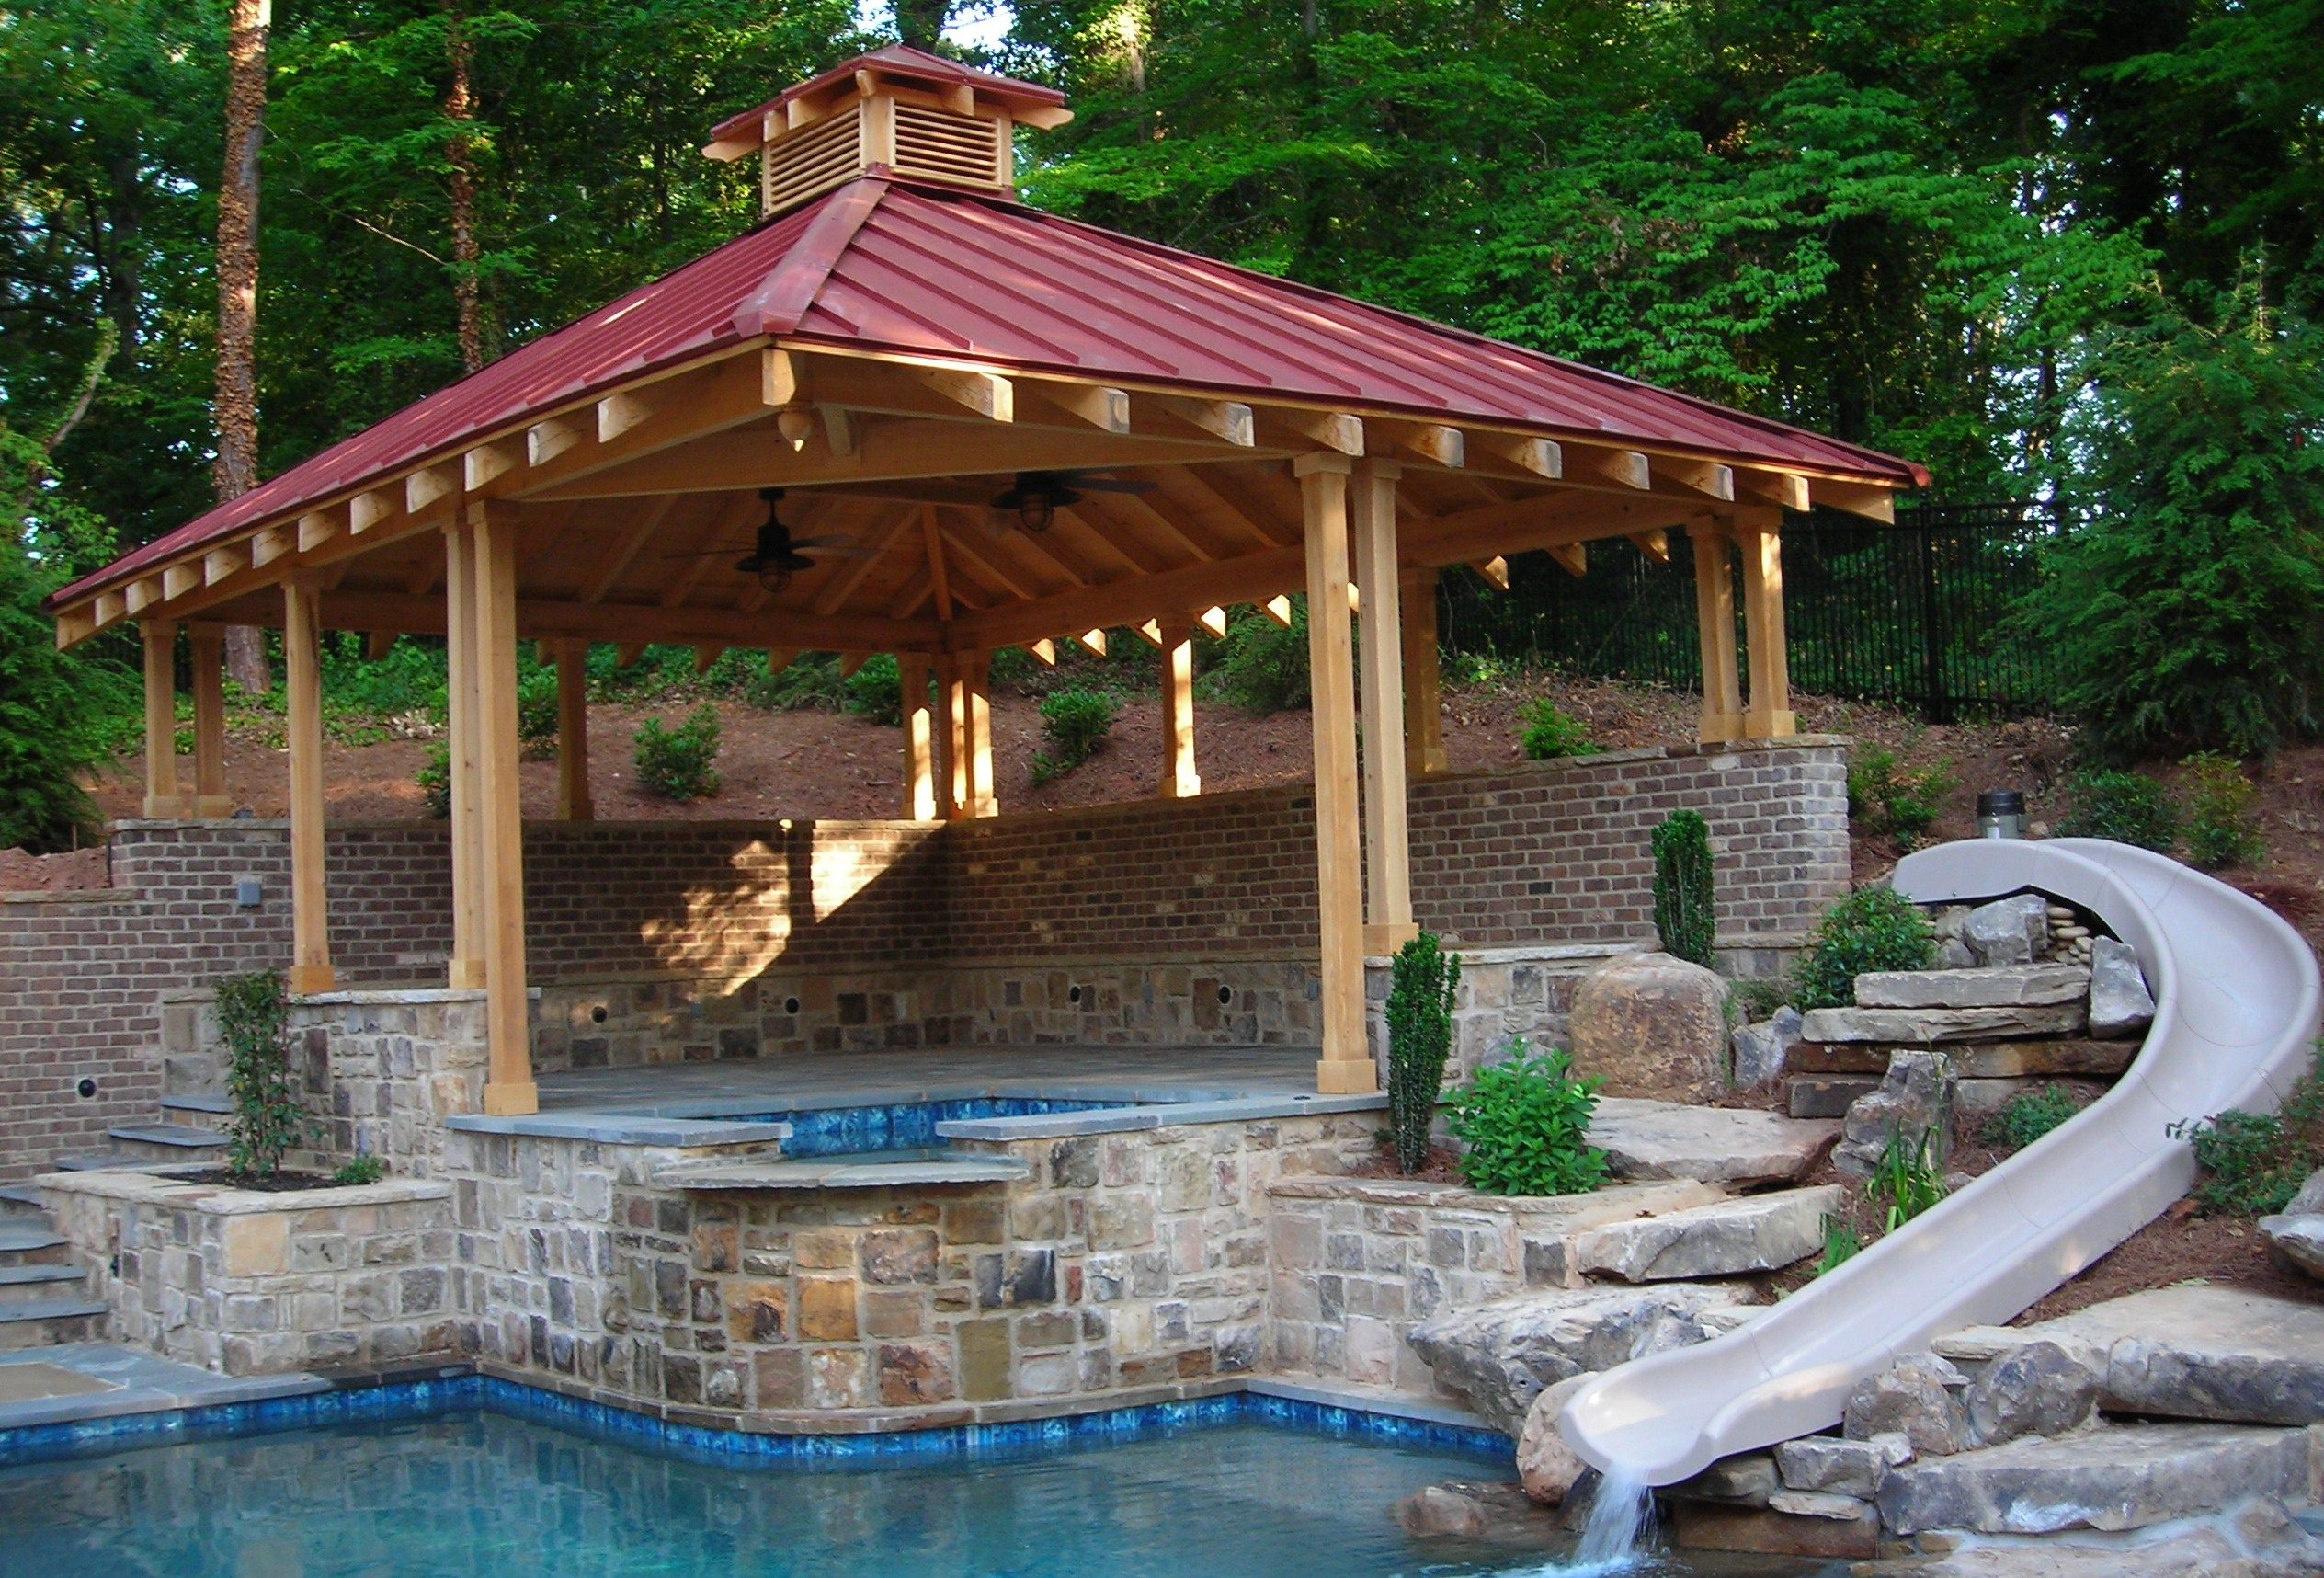 Decoration Picturesque Gazebo Outdoor Decoration With Red